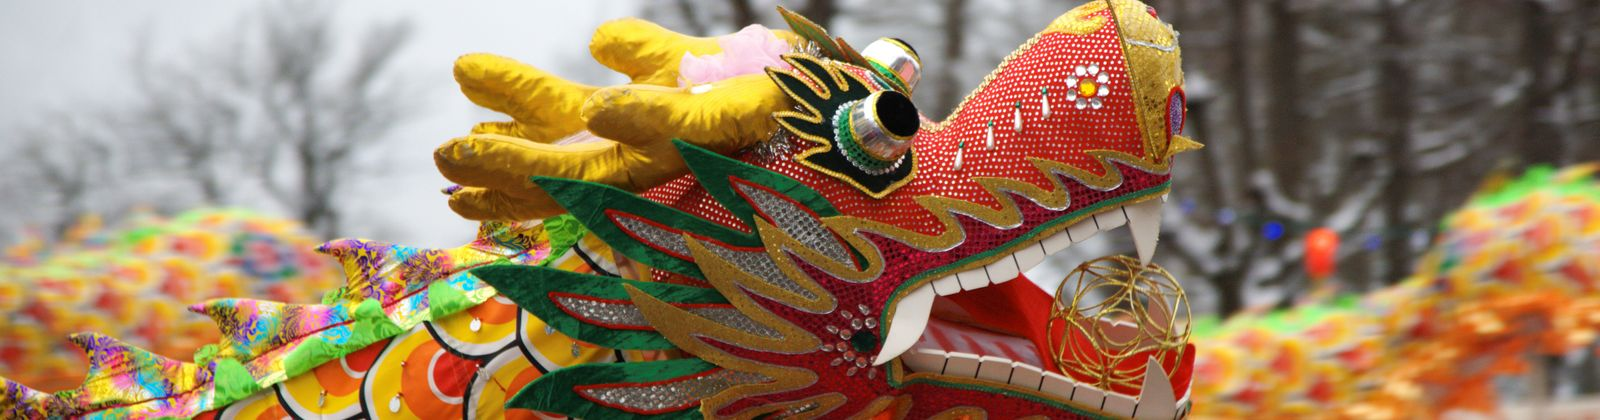 chinese new year celebrations across asia - Chinese New Year Celebrations